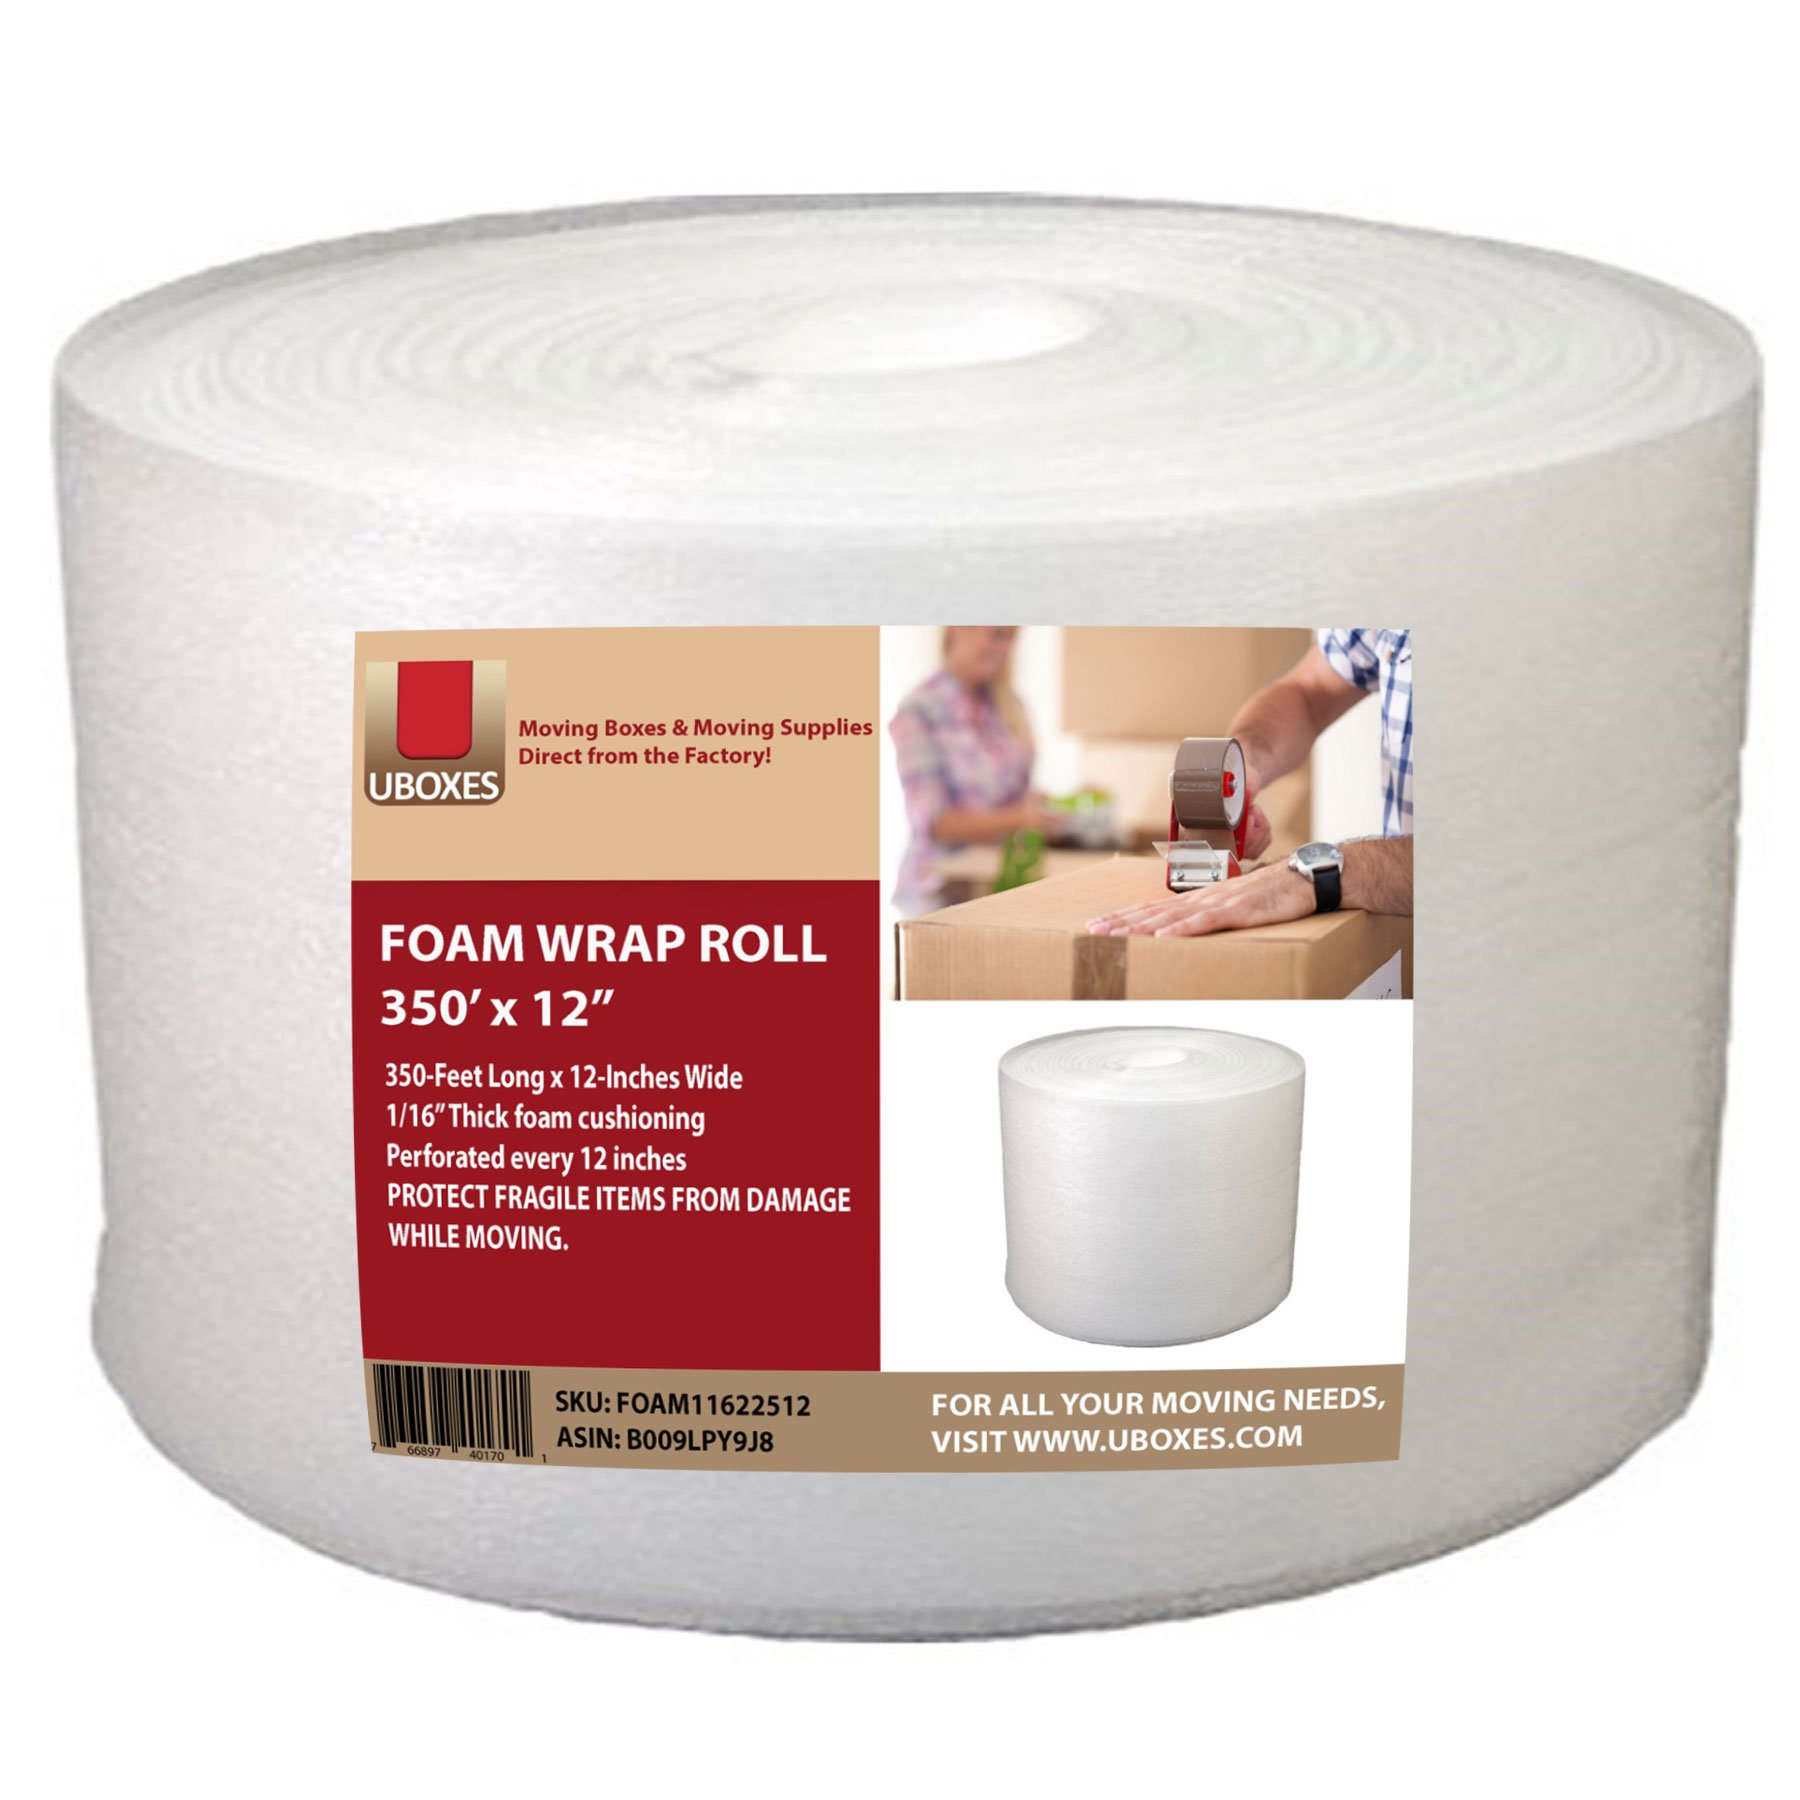 UBOXES Foam Wrap Roll 350' x 12'' wide 1/16 thick Cushion - 12'' Perforation